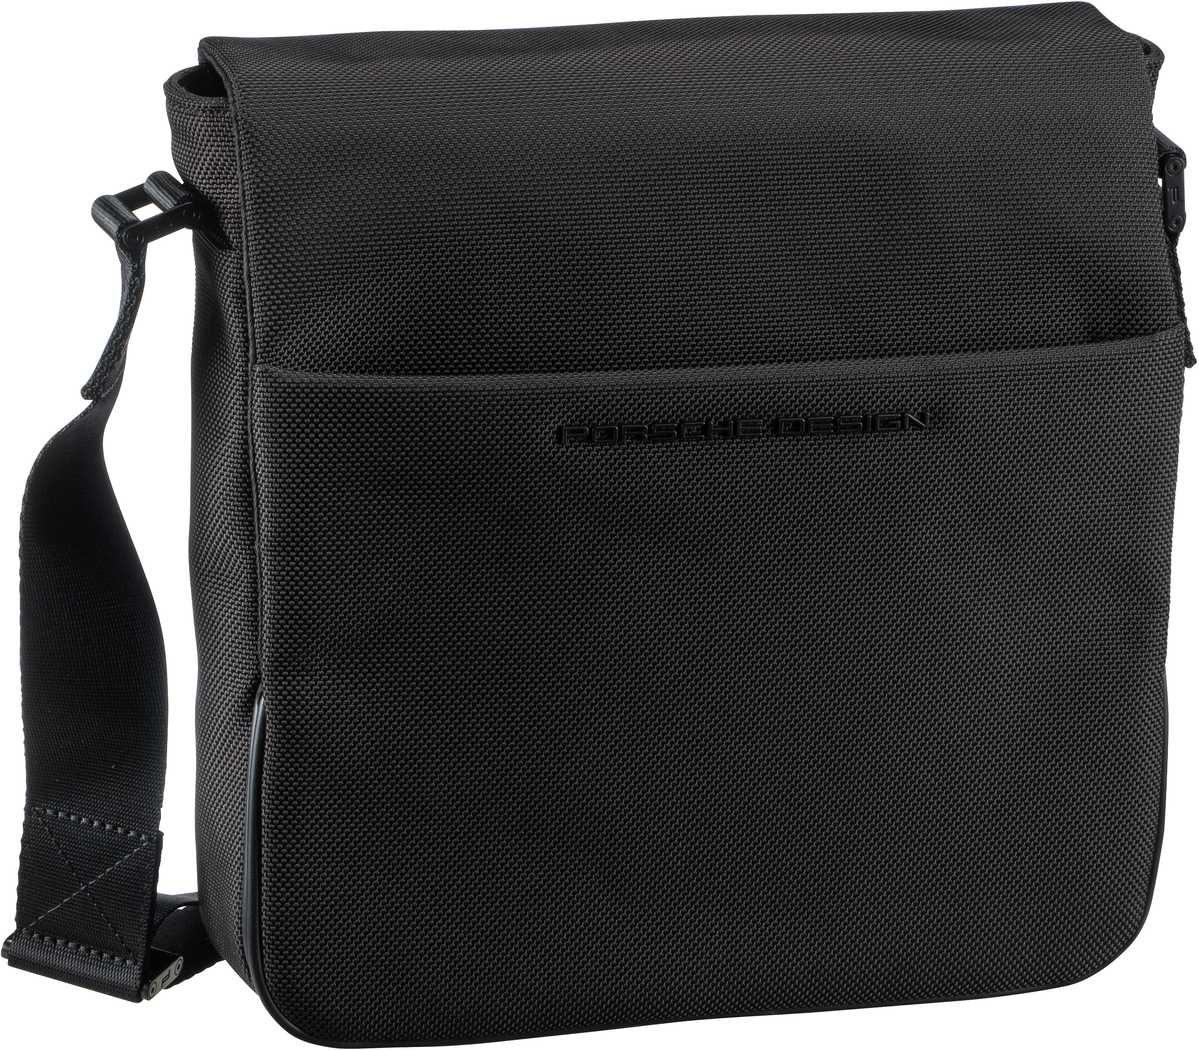 Umhängetasche Roadster 4.0 ShoulderBag MVF Black